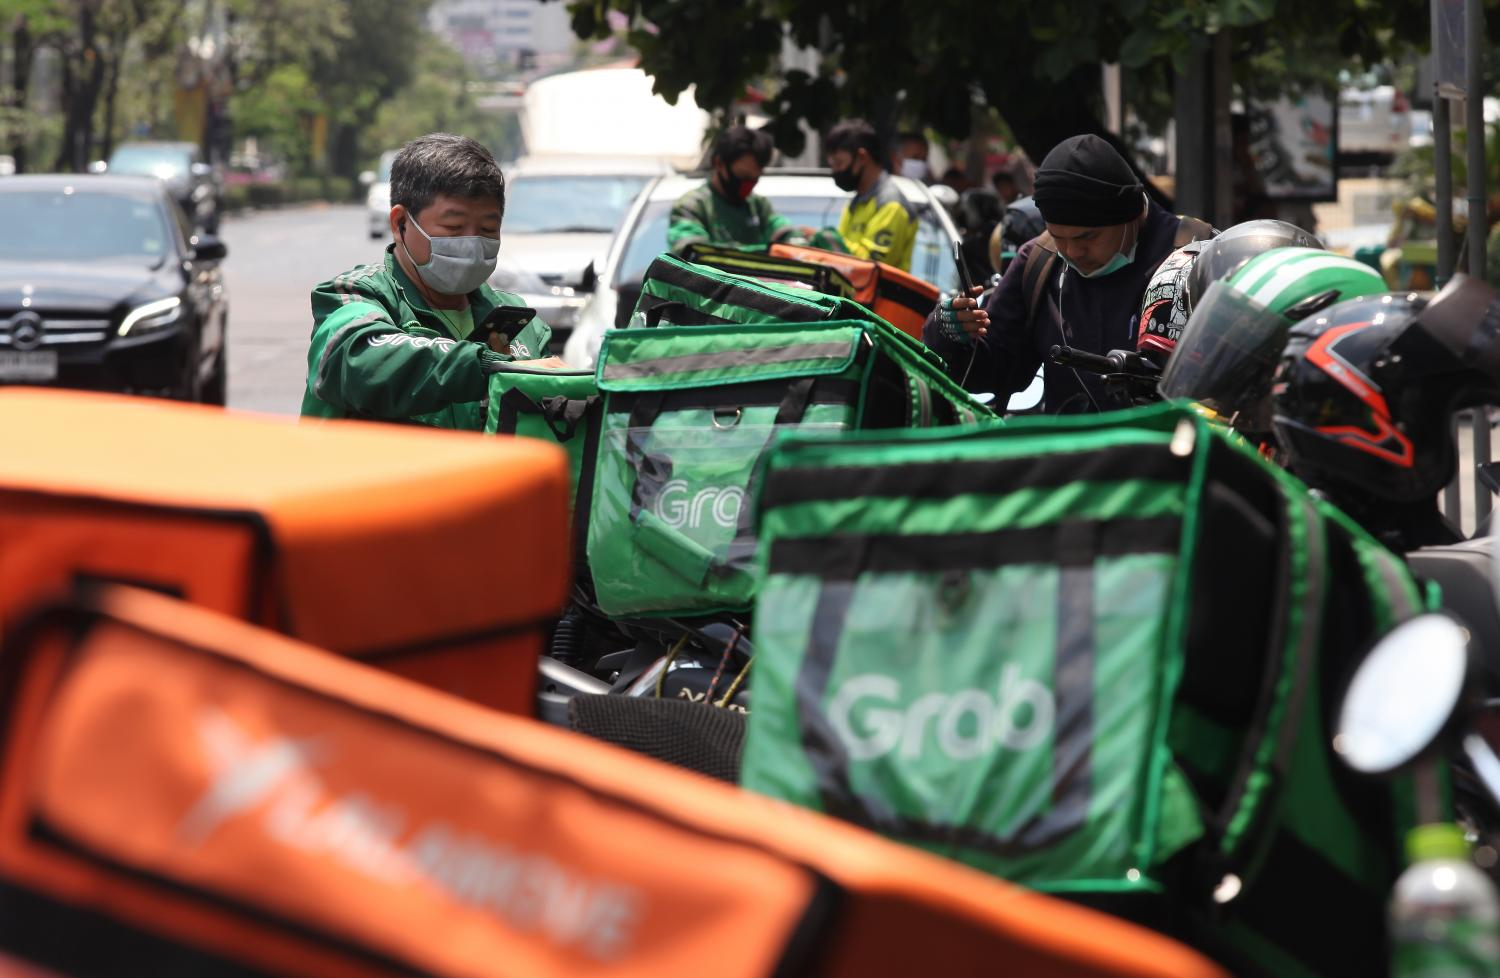 As the food delivery services of Grab, Foodpanda, Get (Gojek) and Line Man have seen increased demand, K-Research estimates growth in the food delivery market at 19-21% this year. Arnun Chonmahatrakool